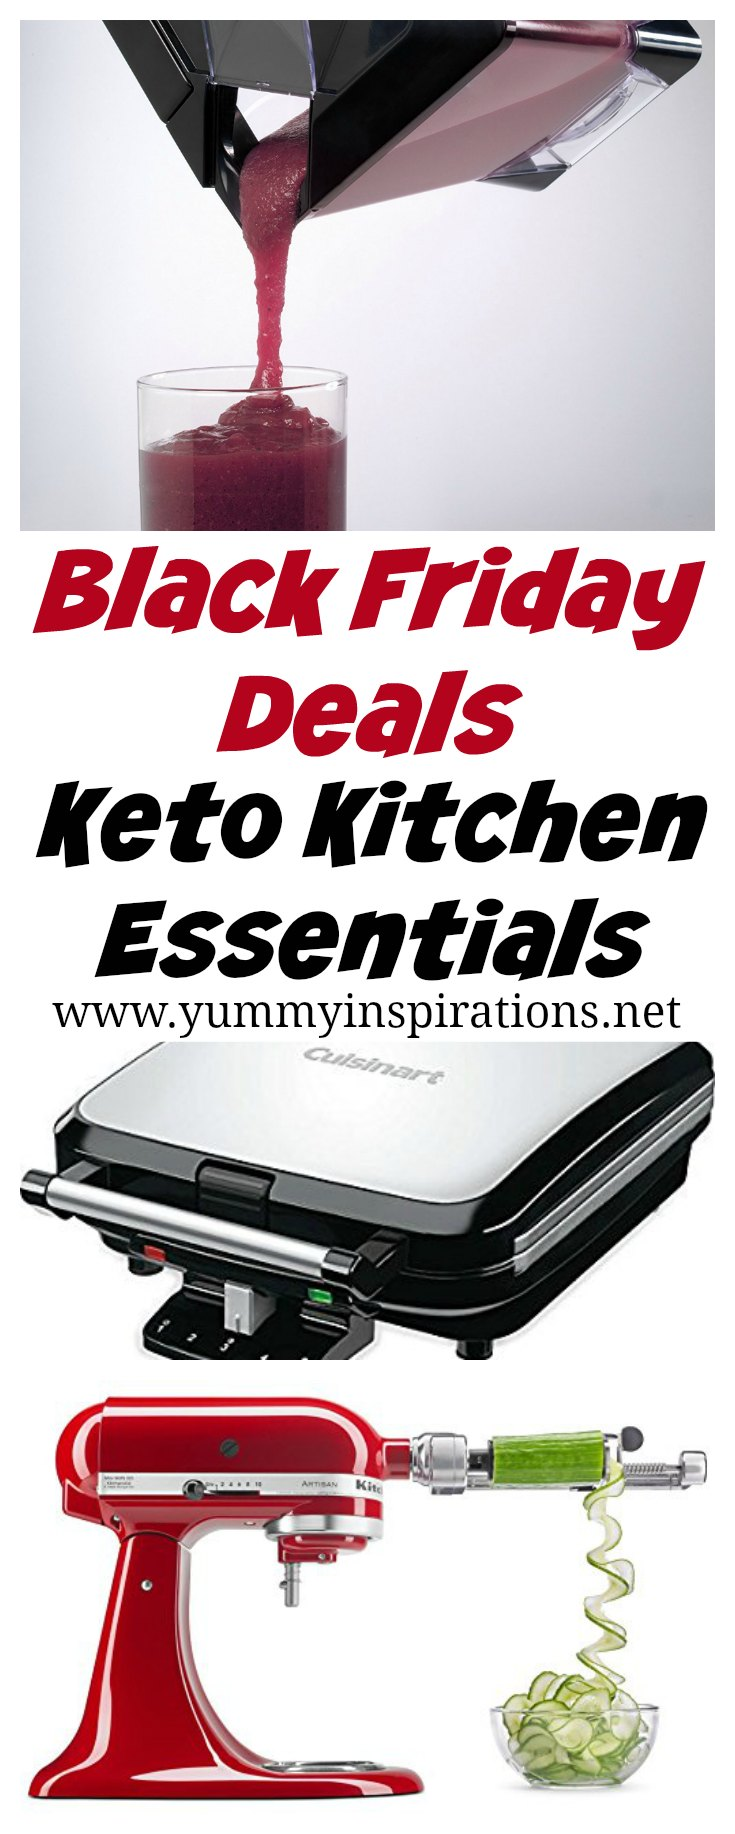 AMAZING Black Friday Deals on Keto Kitchen Tools - Black Friday & Cyber Monday Deals - Keto Kitchen Deals - amazing offers on cookbooks and gadgets to make it even easier to follow a low carb diet like the keto diet